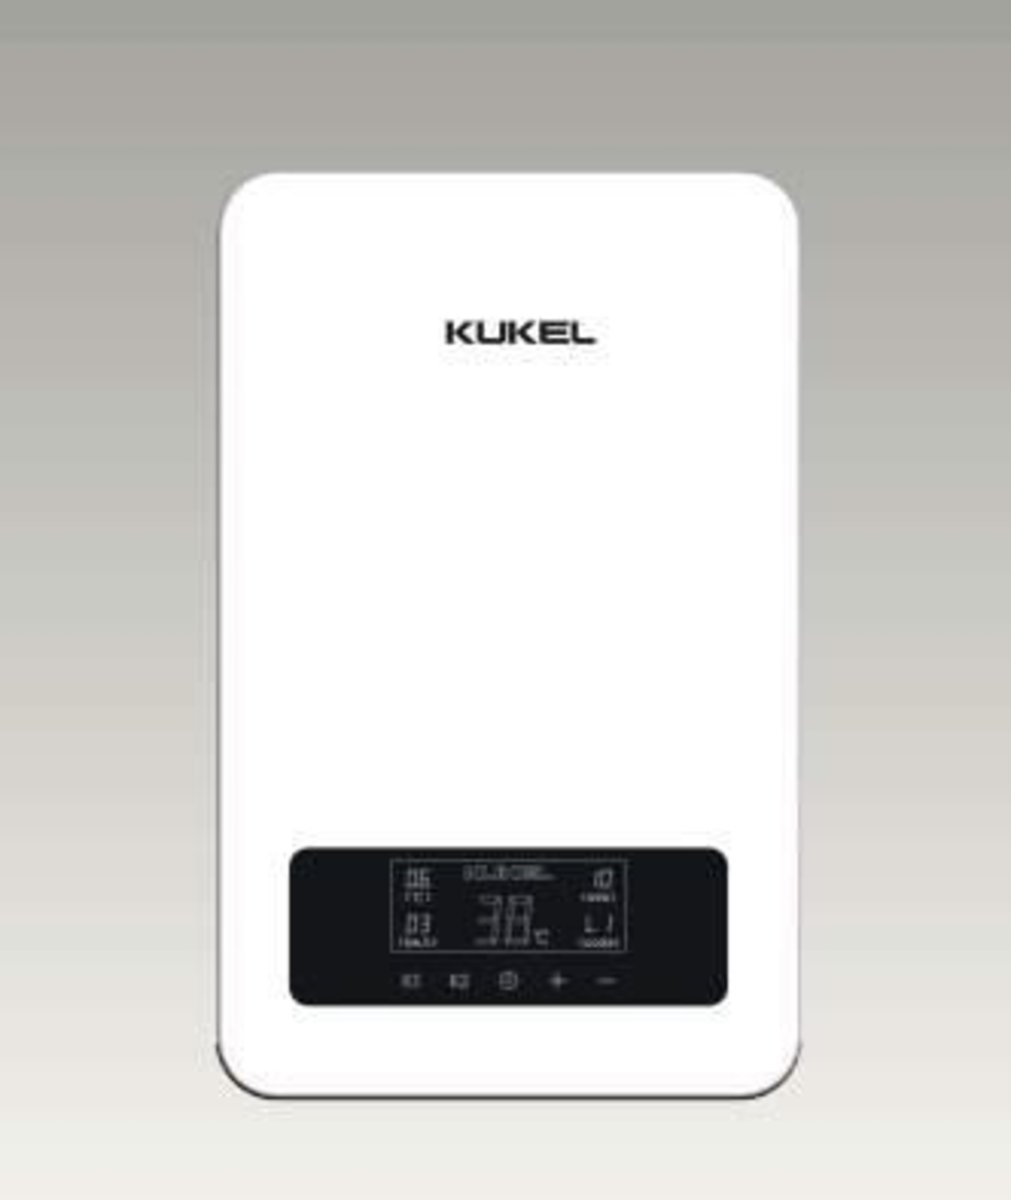 Porcelain-Energy instantaneous thermostat water heater 7.5kw for shower (KUL59-828-7.5kw)